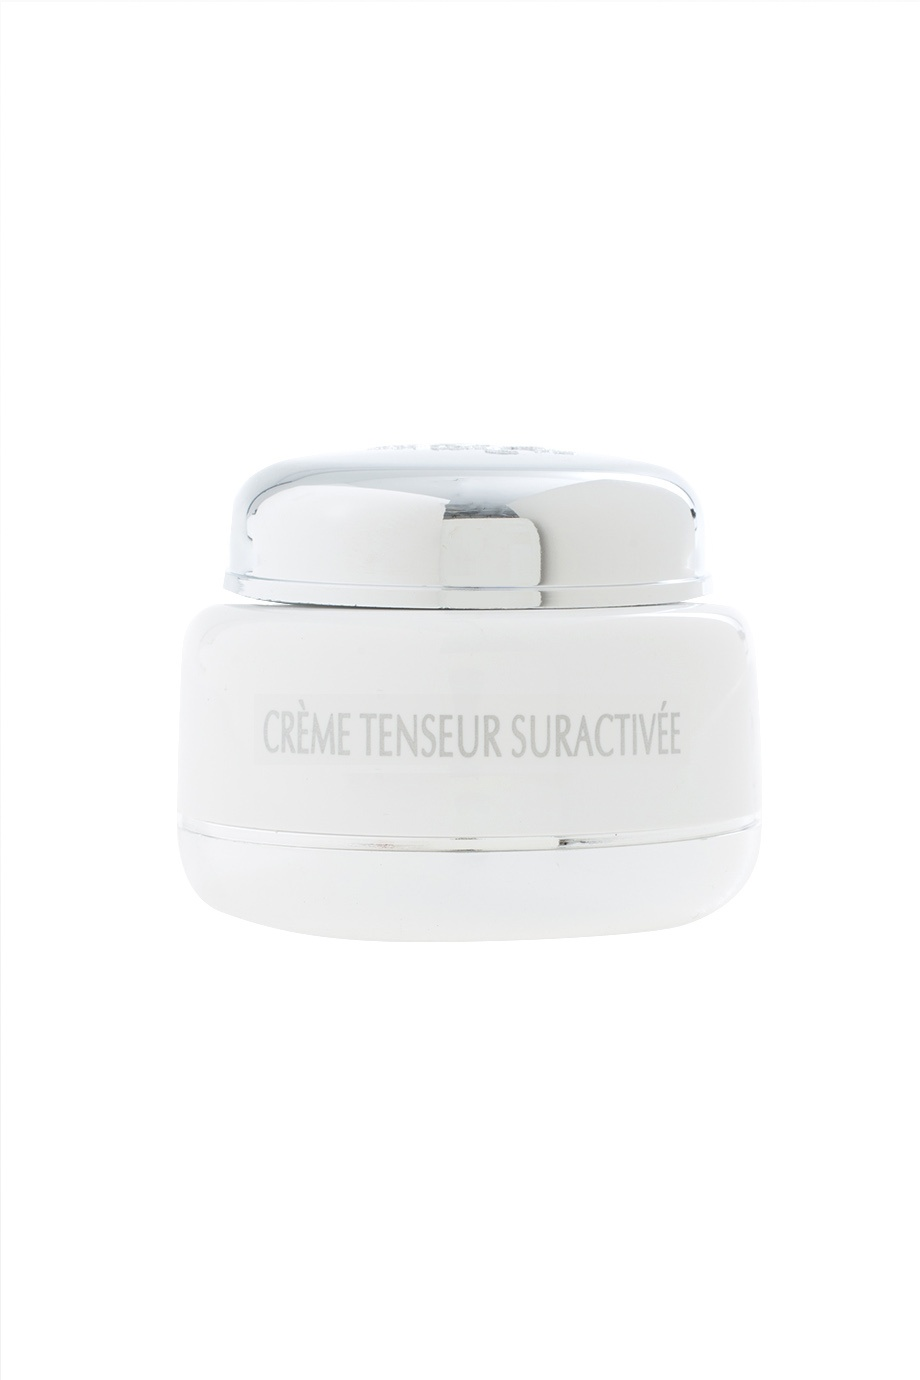 Лифтинг-крем для лица Cholley Tenseur Suractivee 50ml Methode Cholley Suisse (фото)